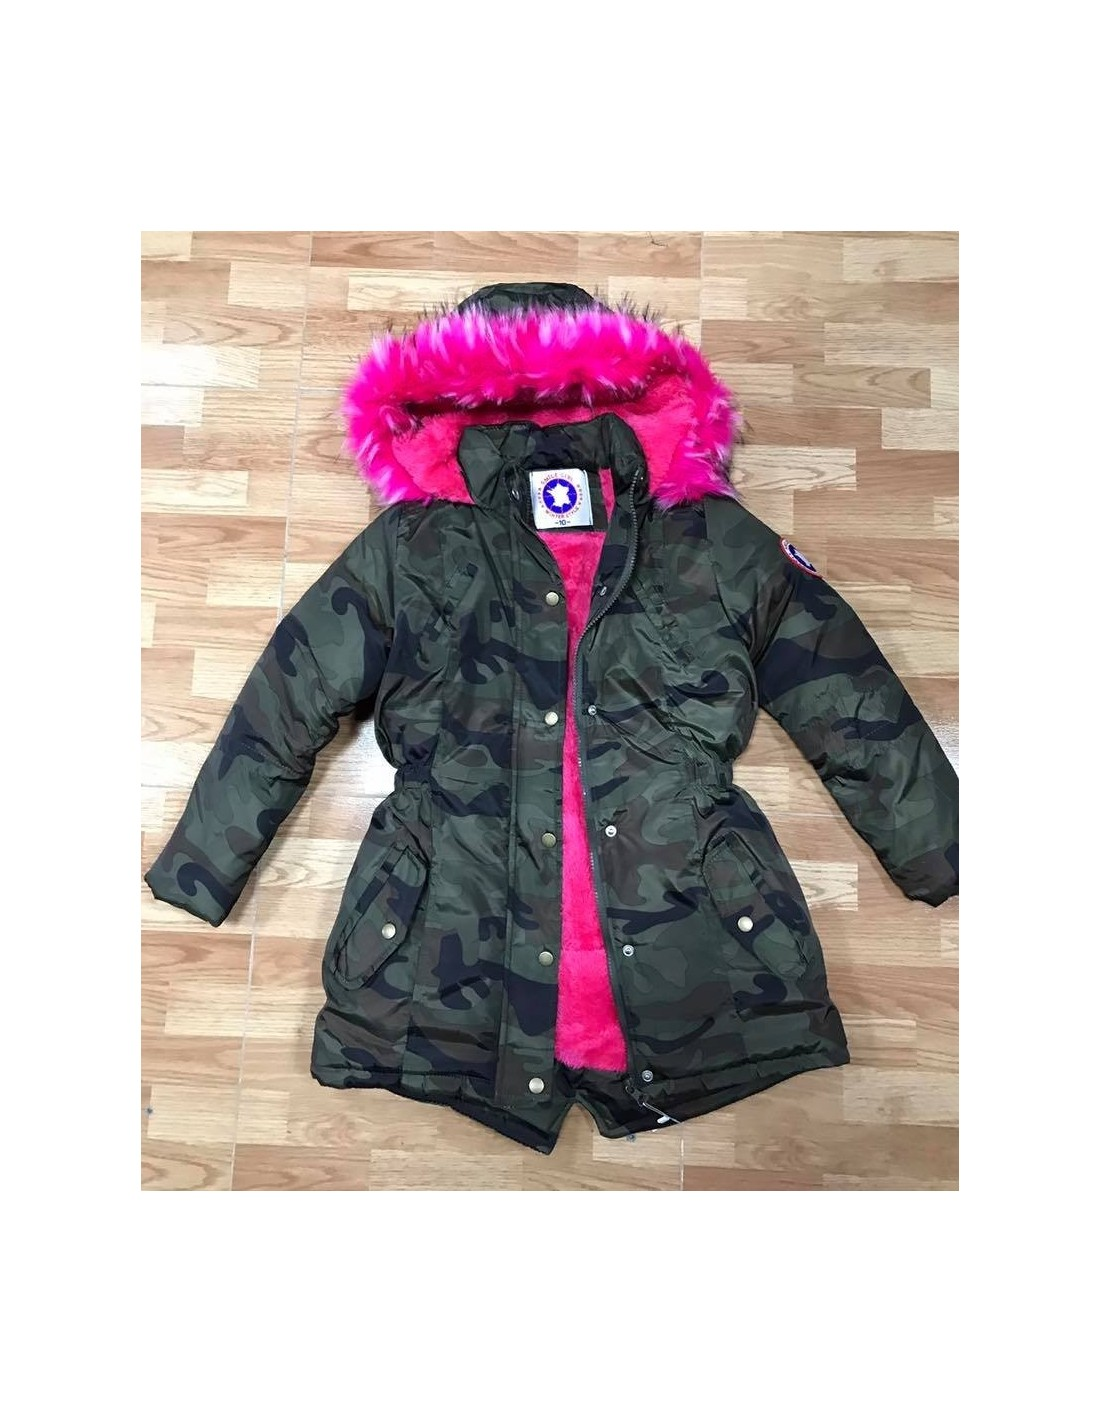 parka militaire fourrure fushia fille 4 a 14 ans mode parka. Black Bedroom Furniture Sets. Home Design Ideas